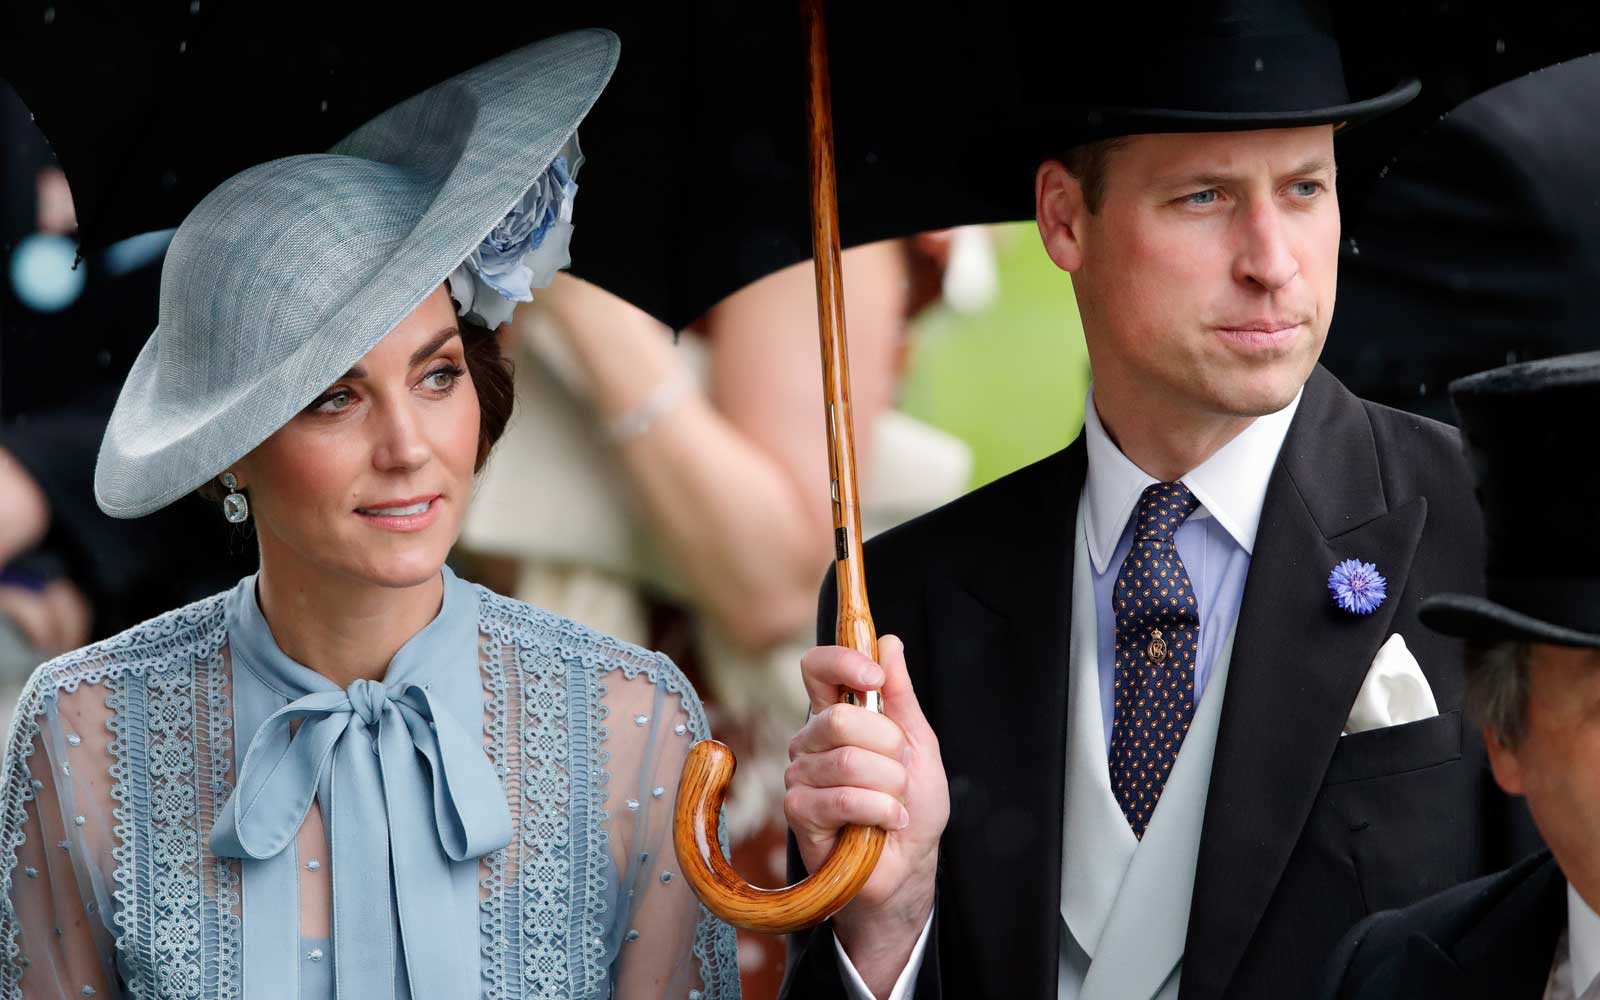 Think You're Organized Enough to Maintain Kate Middleton and Prince William's Busy Schedules? They're Hiring.